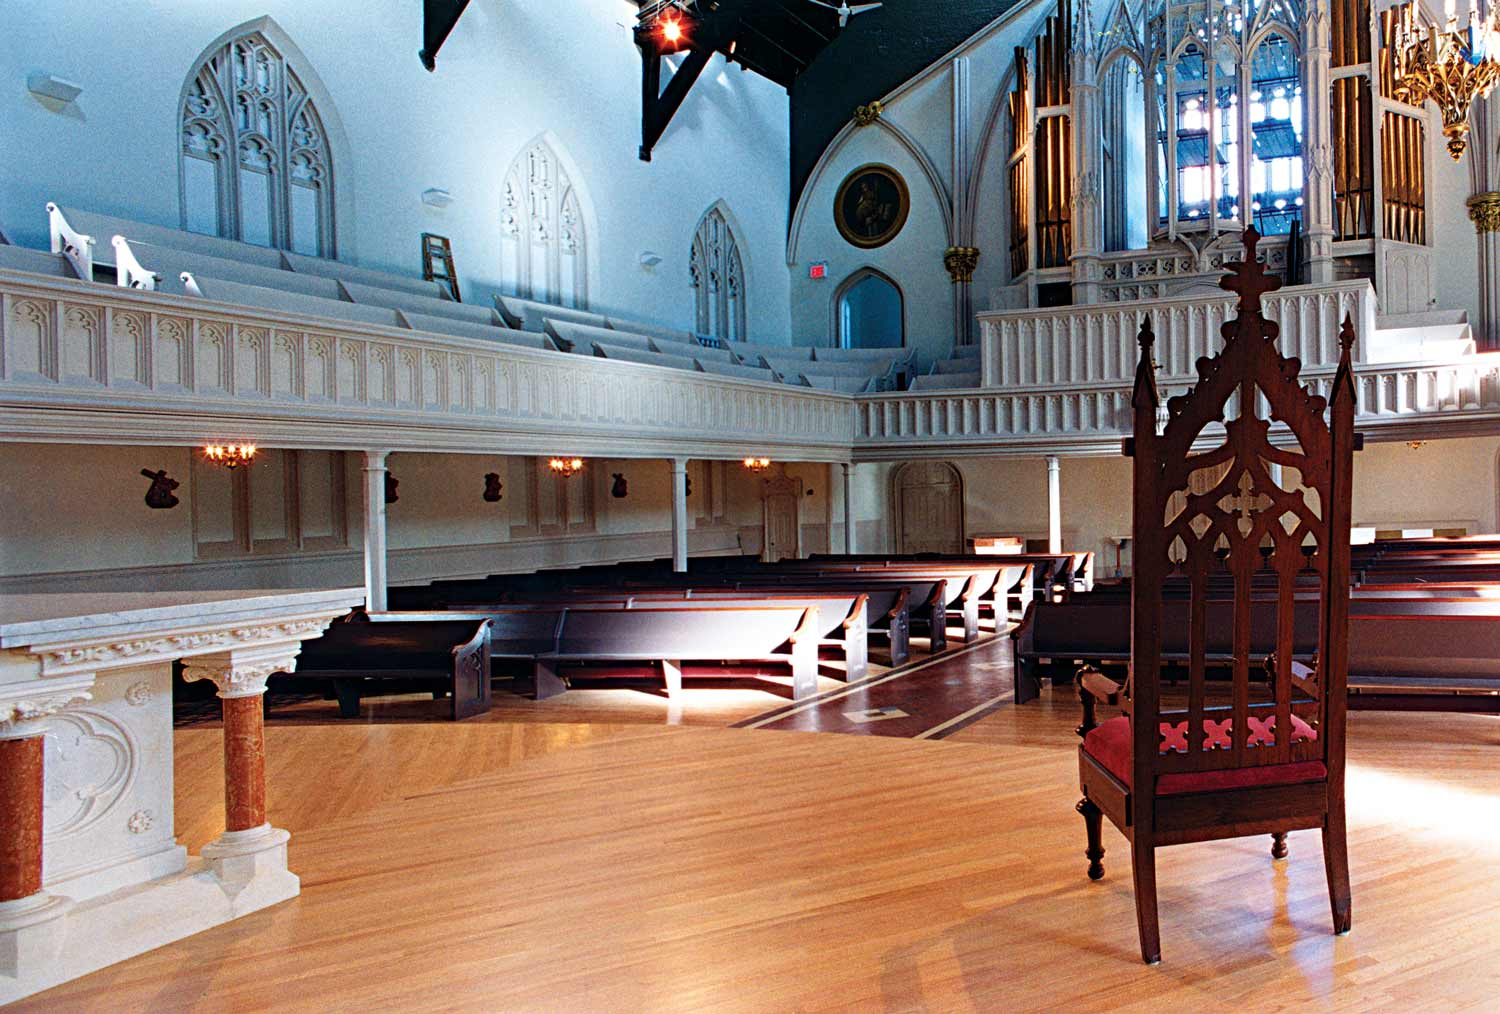 Saint Teresa's Church was historically renovated and restored after a ceiling collapse